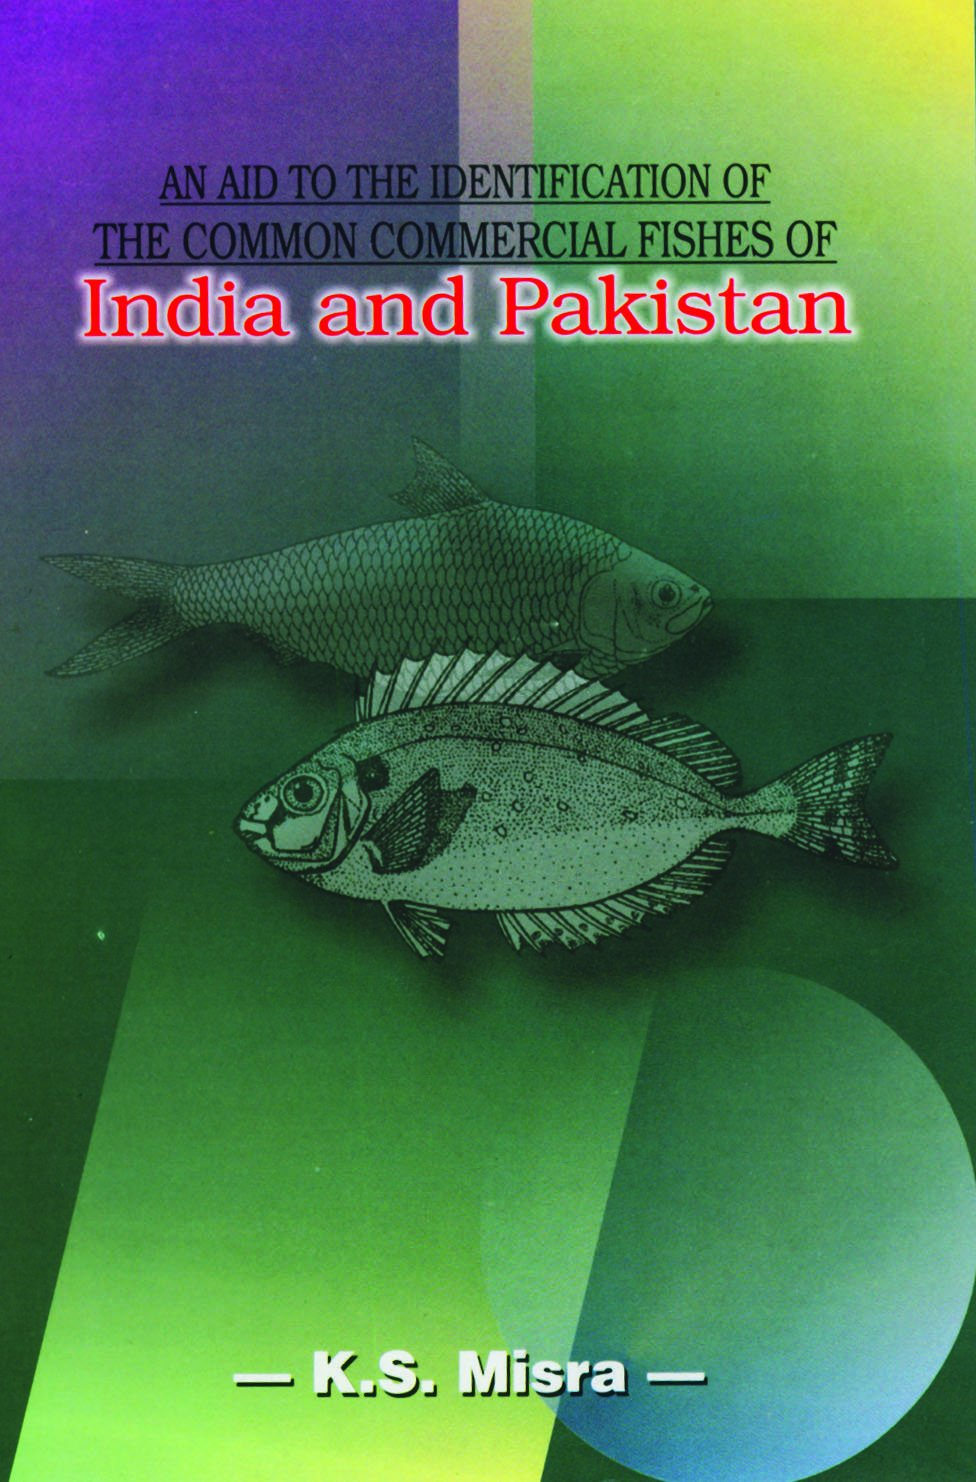 An Aid to the Identification of the Common Commercial Fishes of Indian and Pakistan